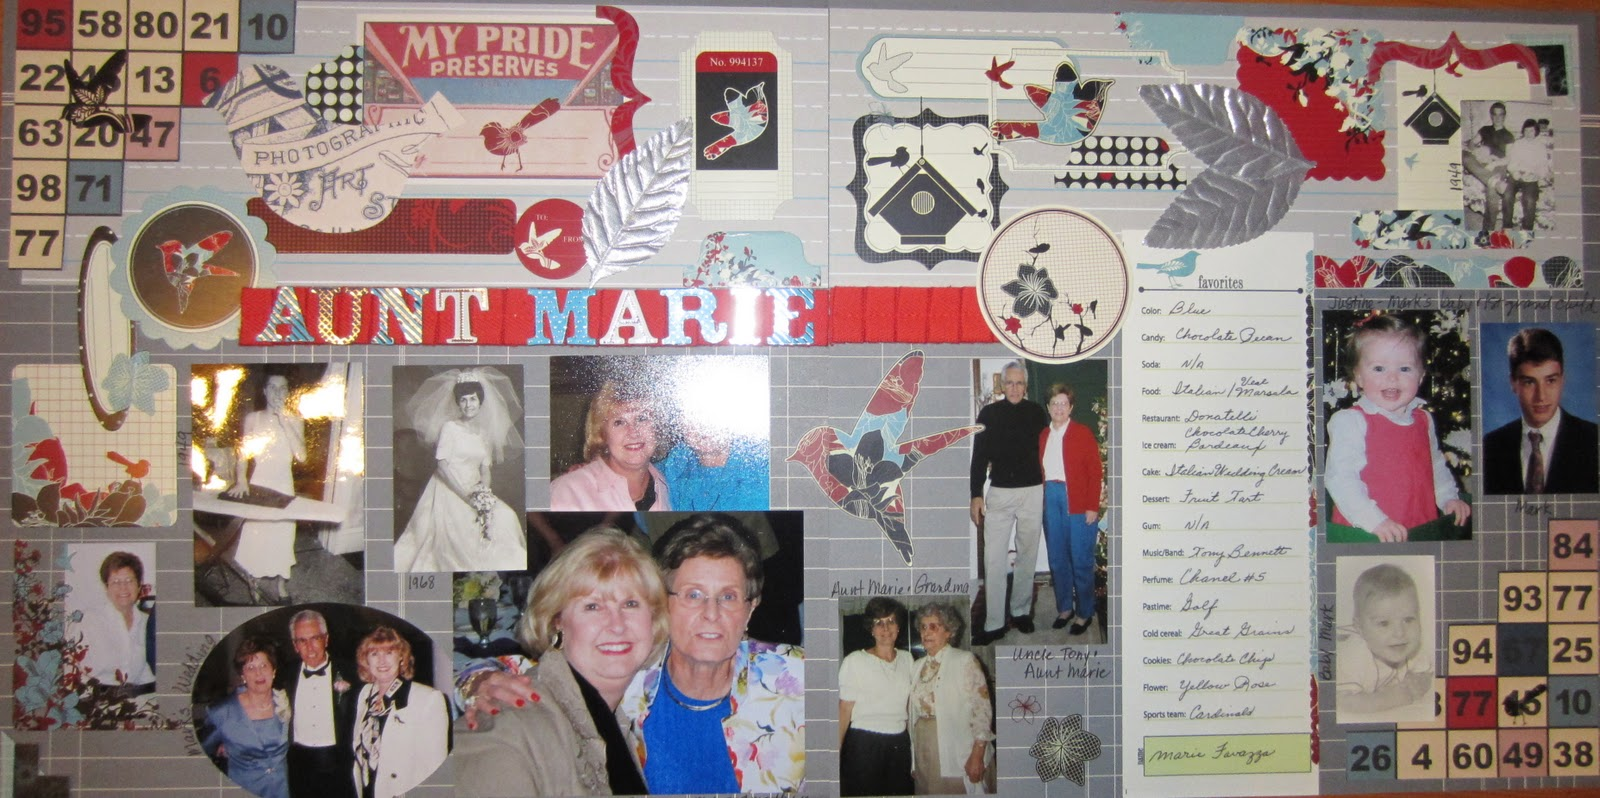 Ziplining scrapbook ideas - This Layout Is About Aunt Marie Mark And Justine